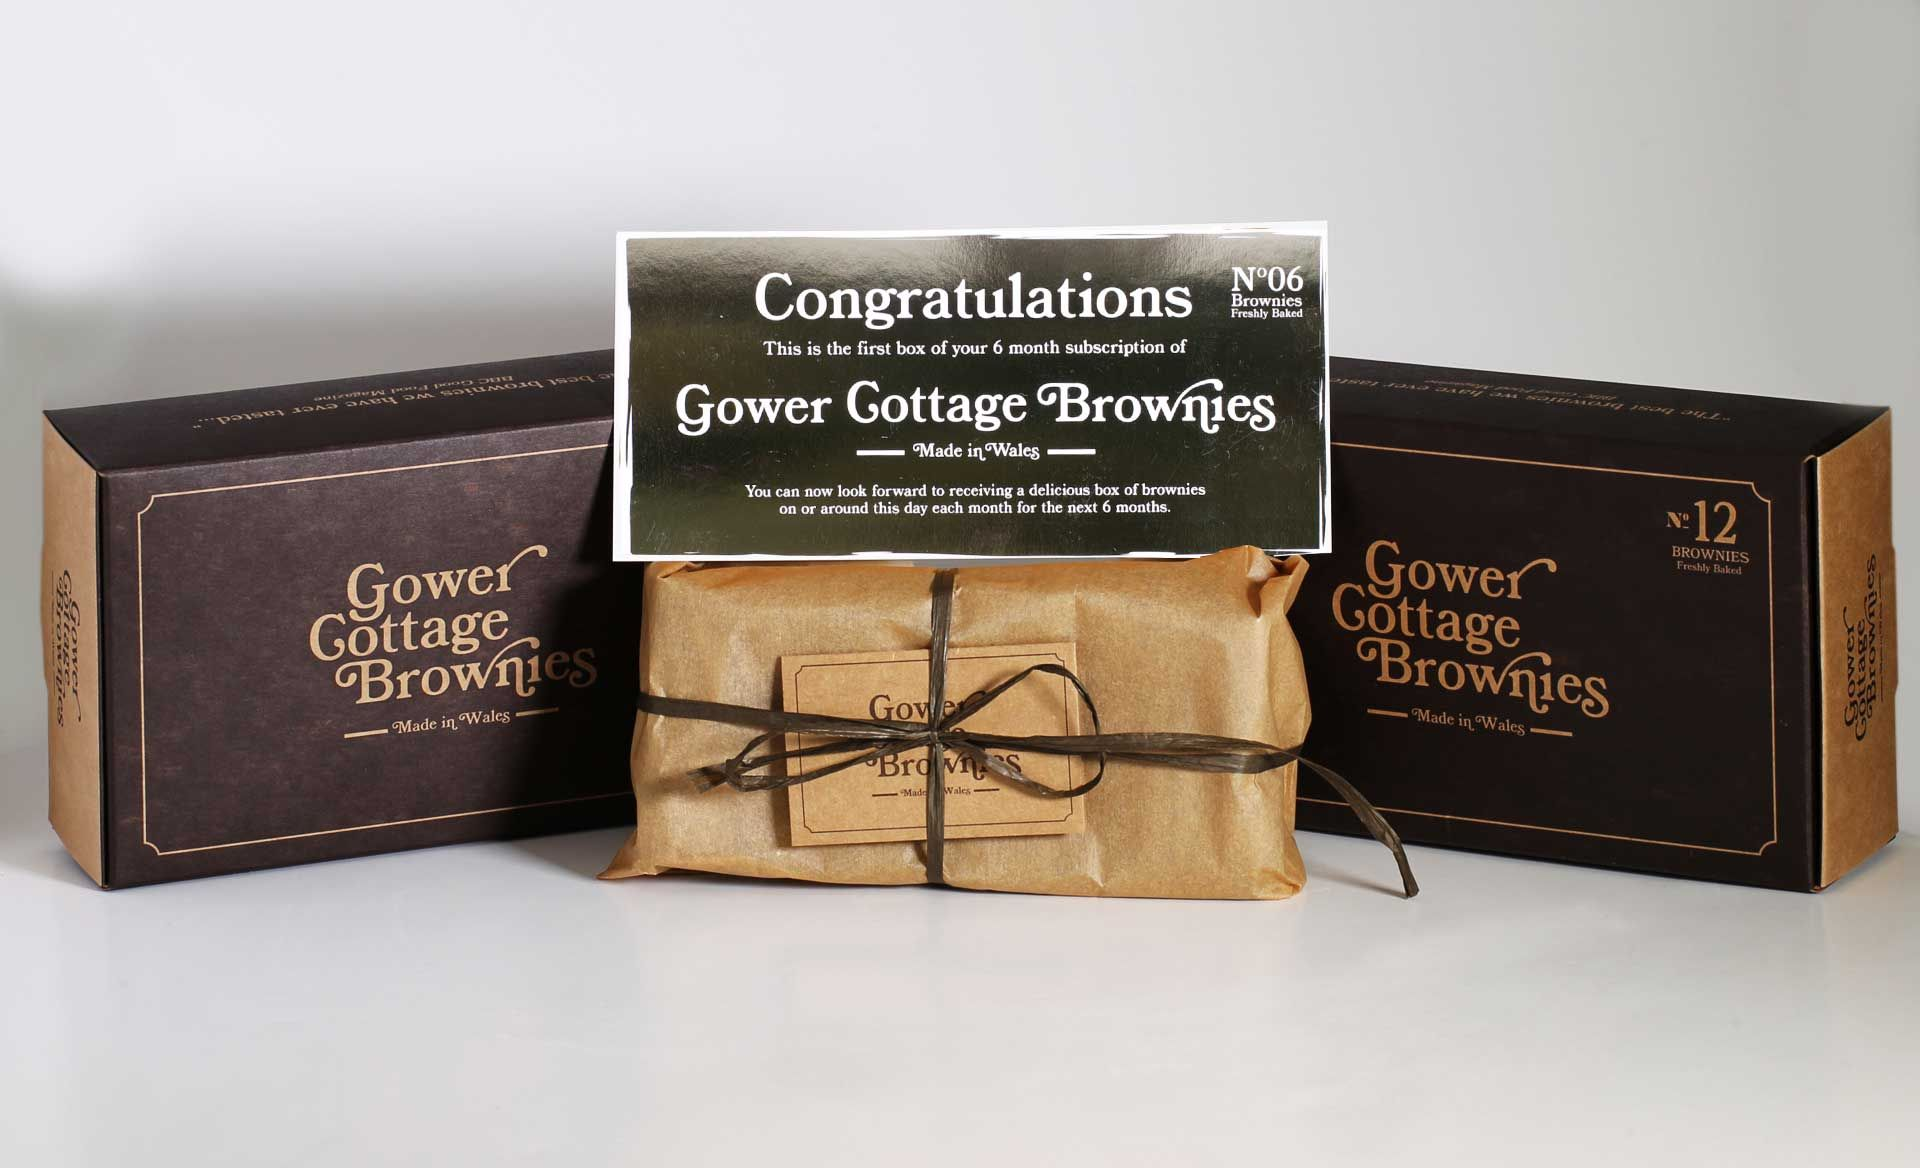 Chocolate Orange Gower Cottage Brownies (6 Month Subscription)